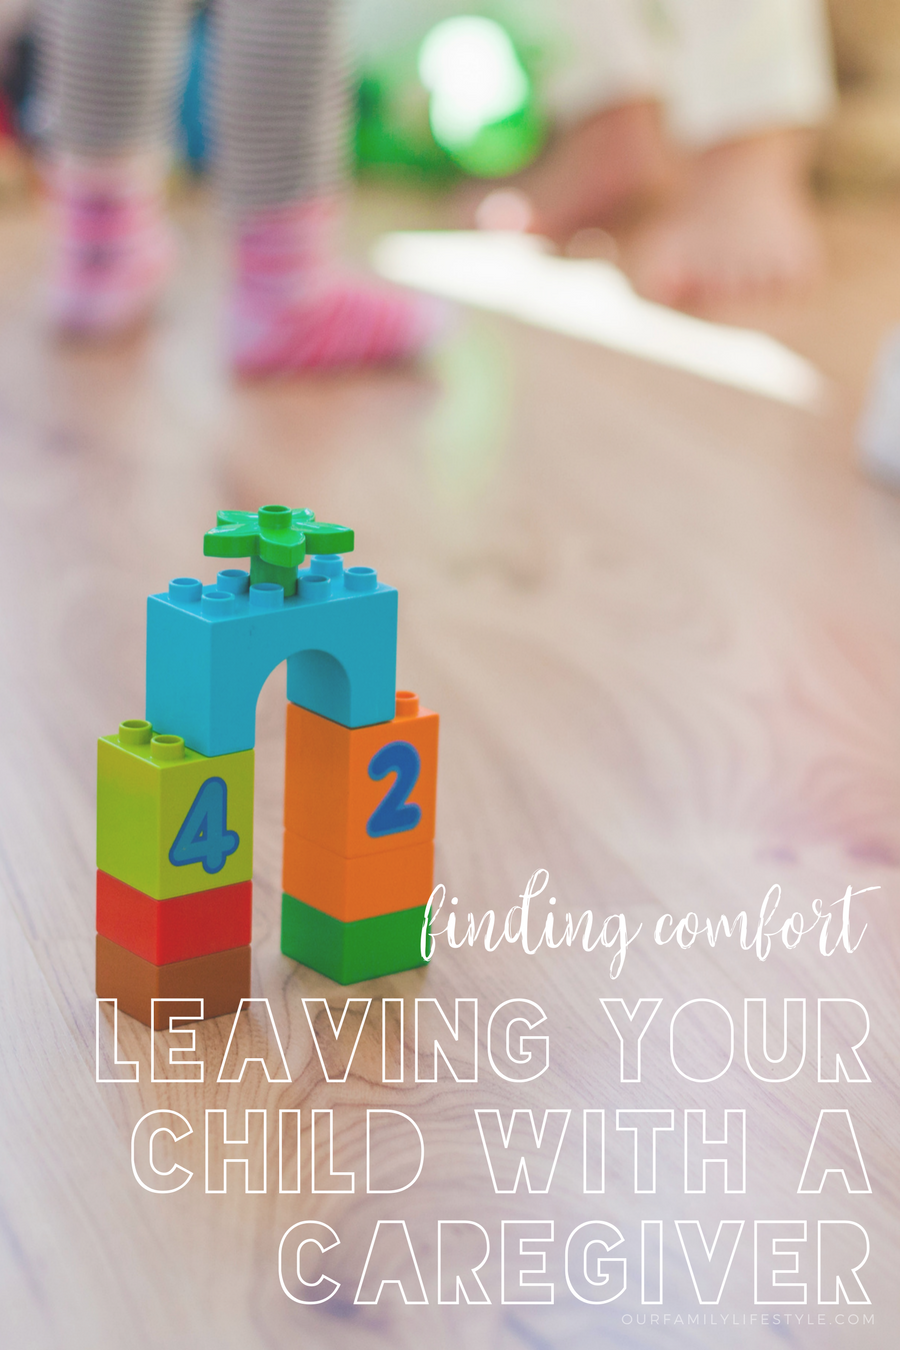 Leaving Your Child With a Caregiver